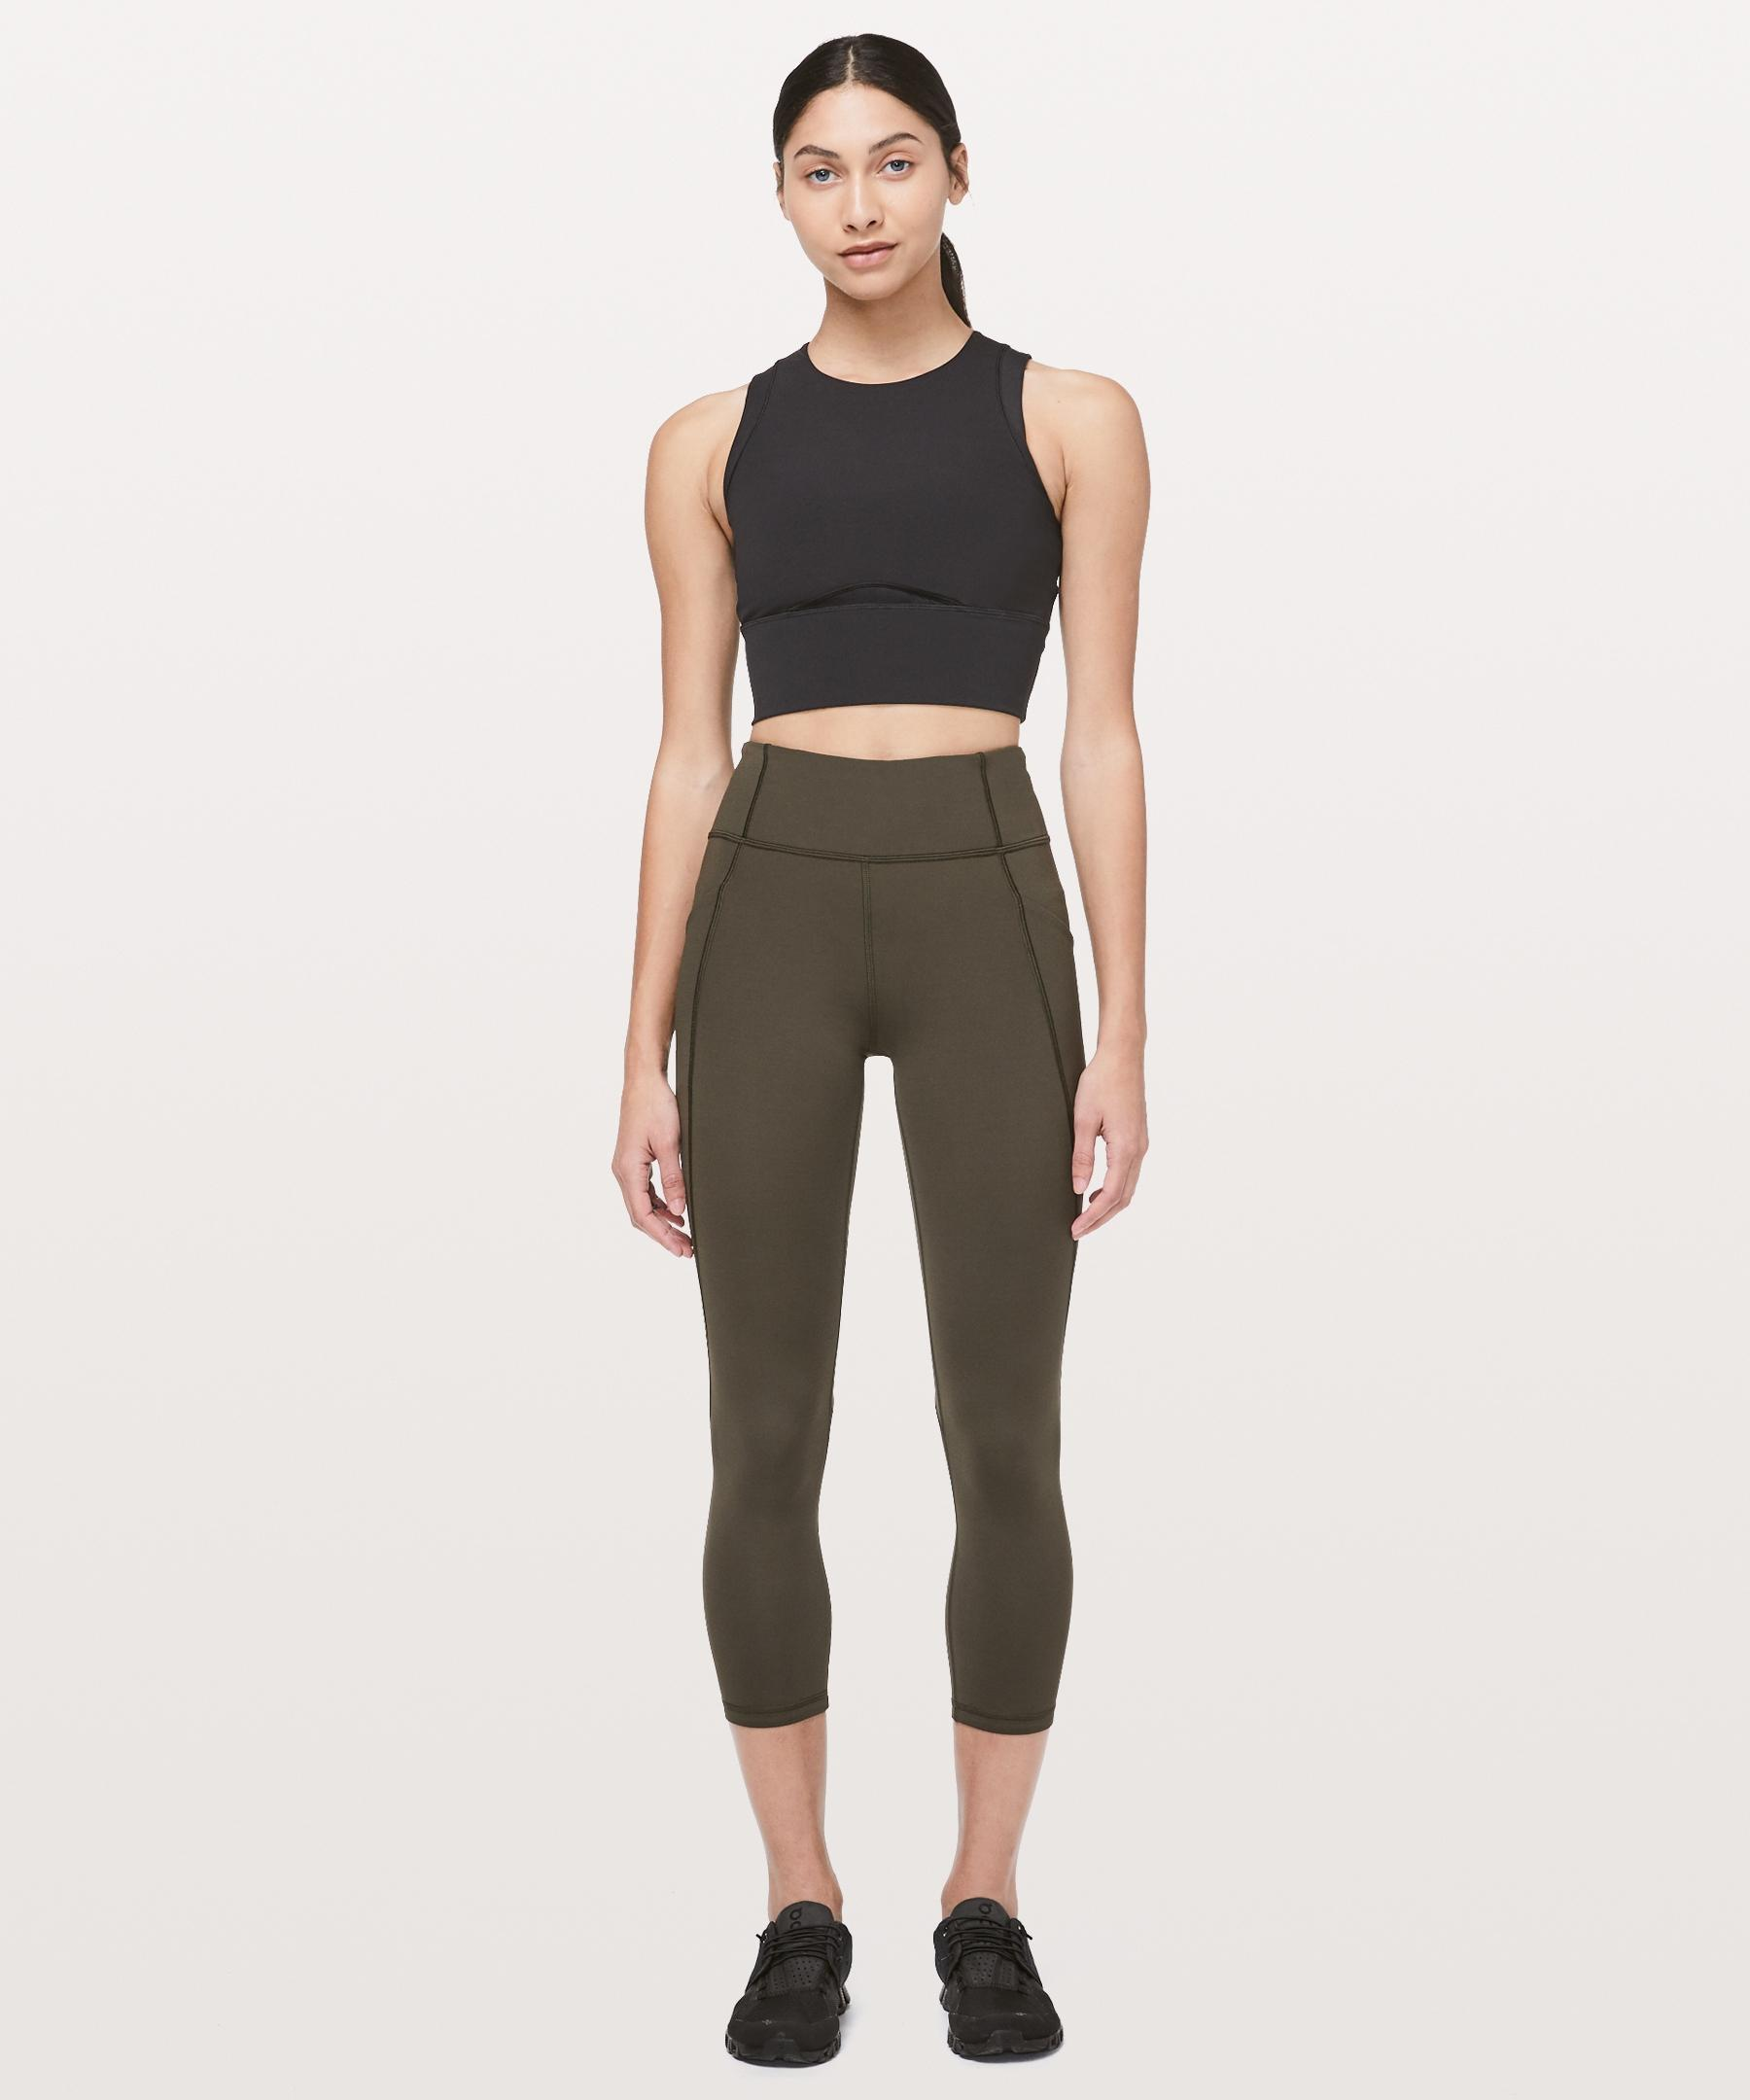 7816fc421 lululemon athletica Time To Sweat Crop *23